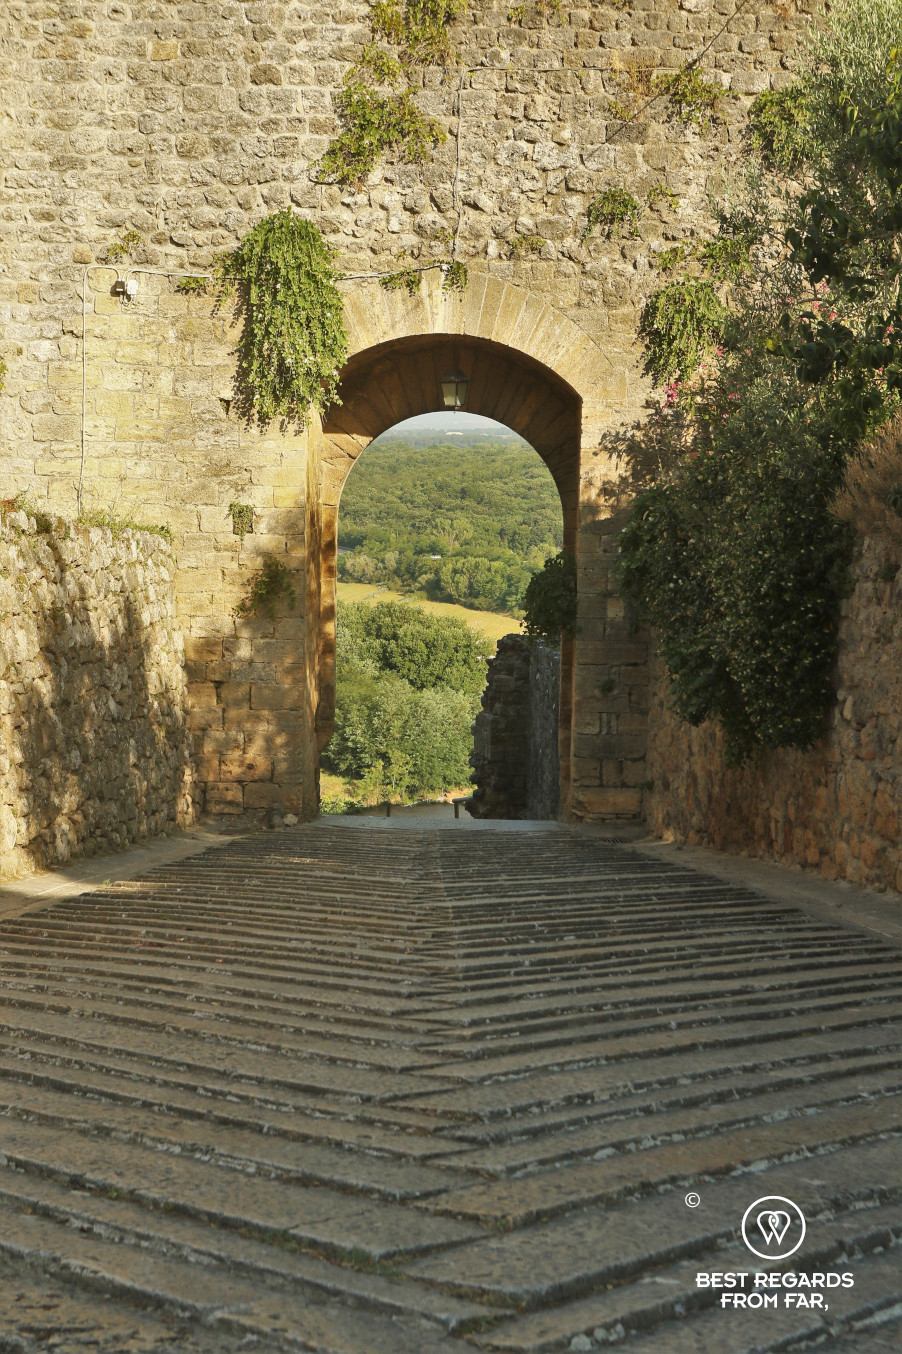 A medieval gate of Monteriggioni, Tuscany, Italy